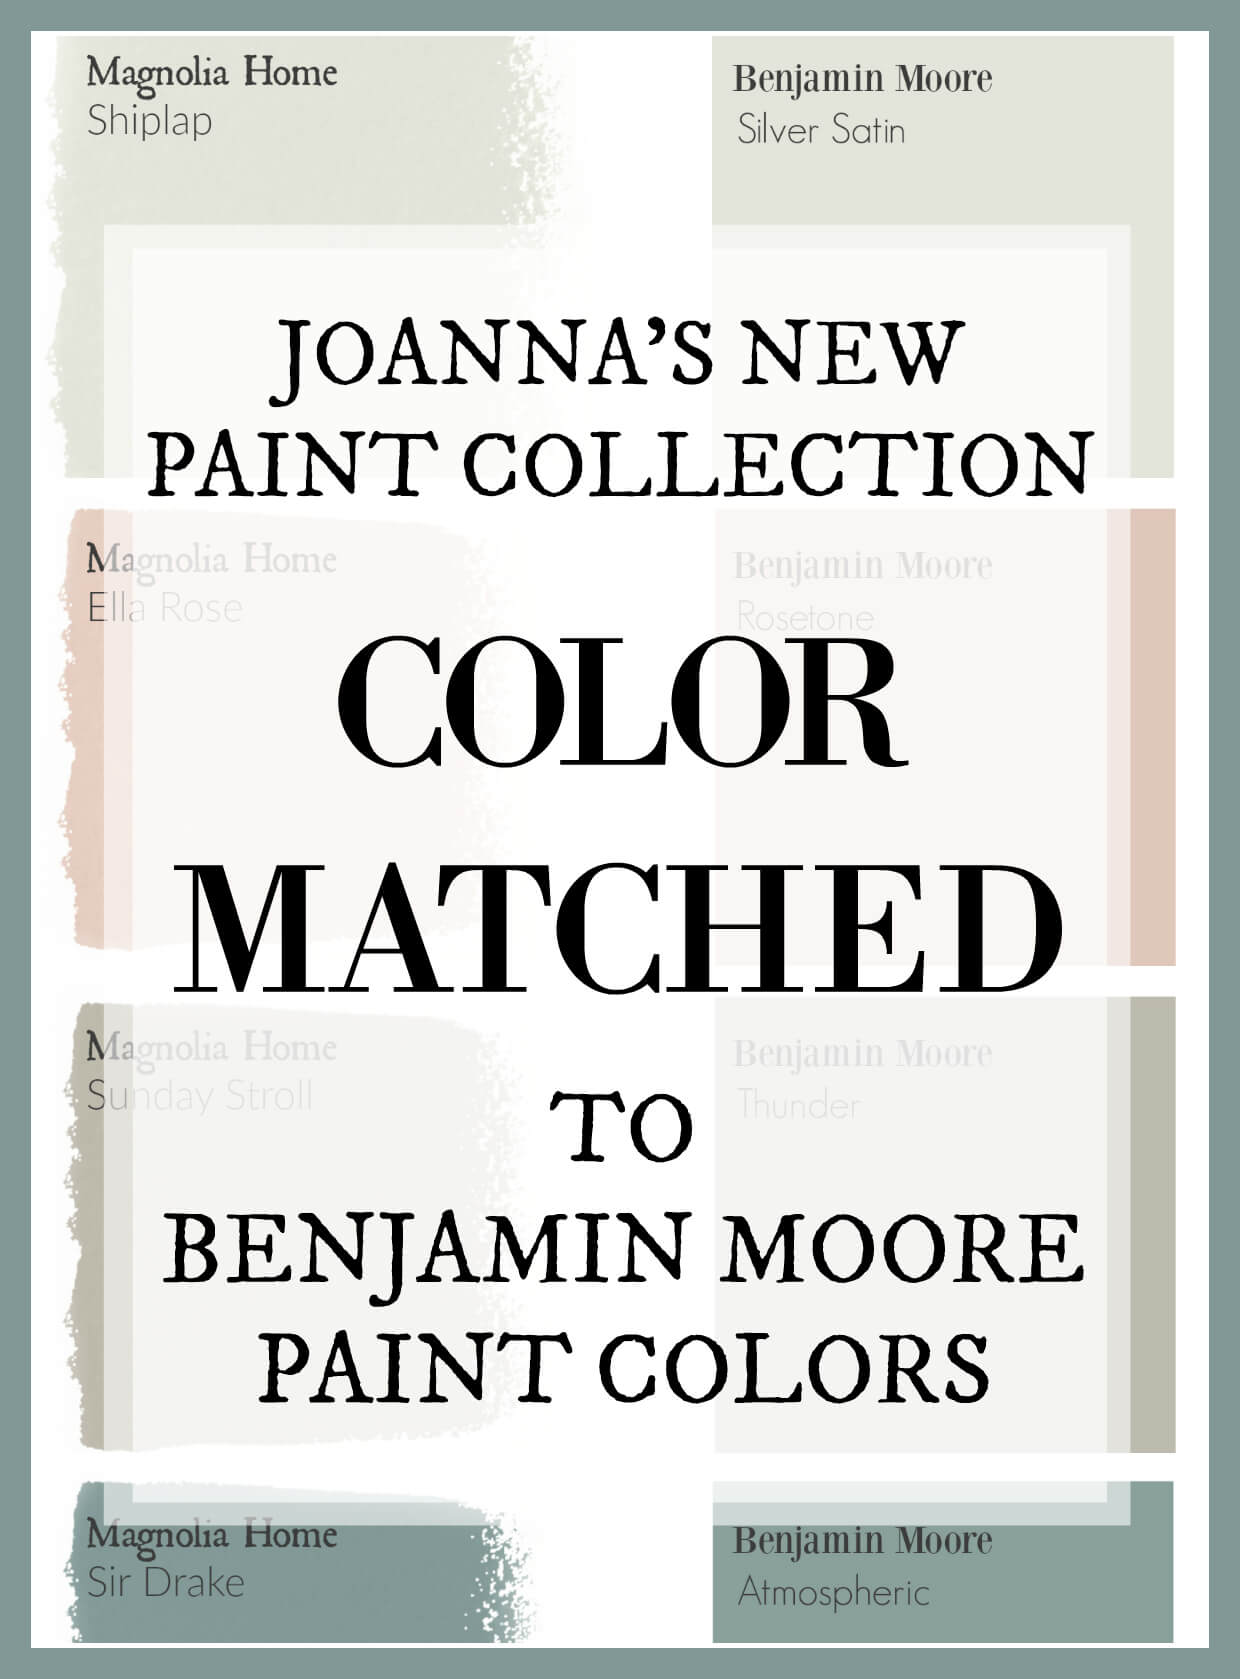 Magnolia Home Paint Collection matched to Benjamin Moore Pants